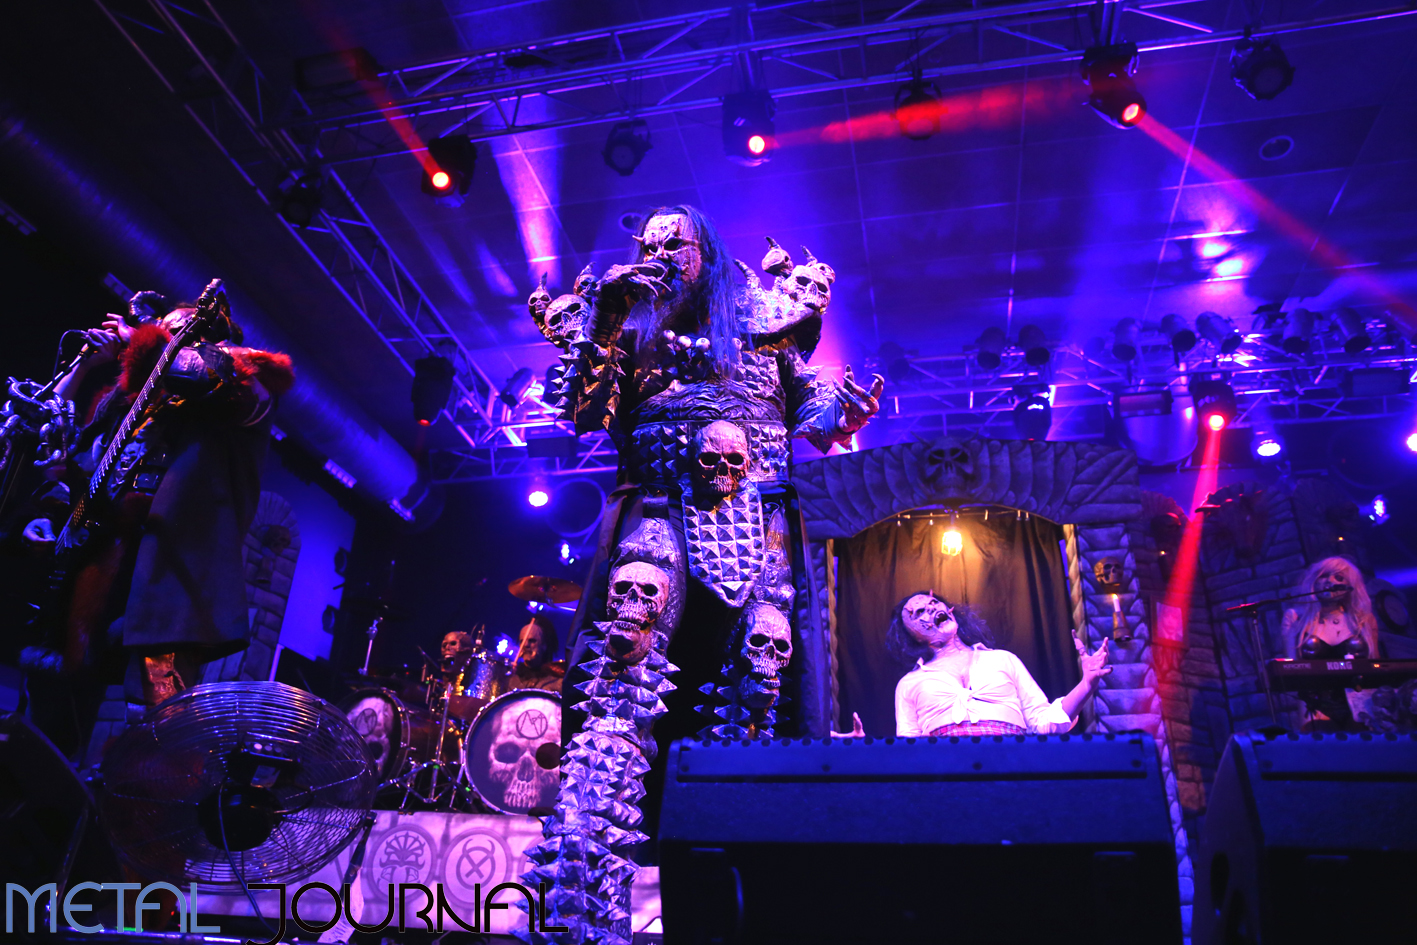 lordi - metal journal 2018 pic 2